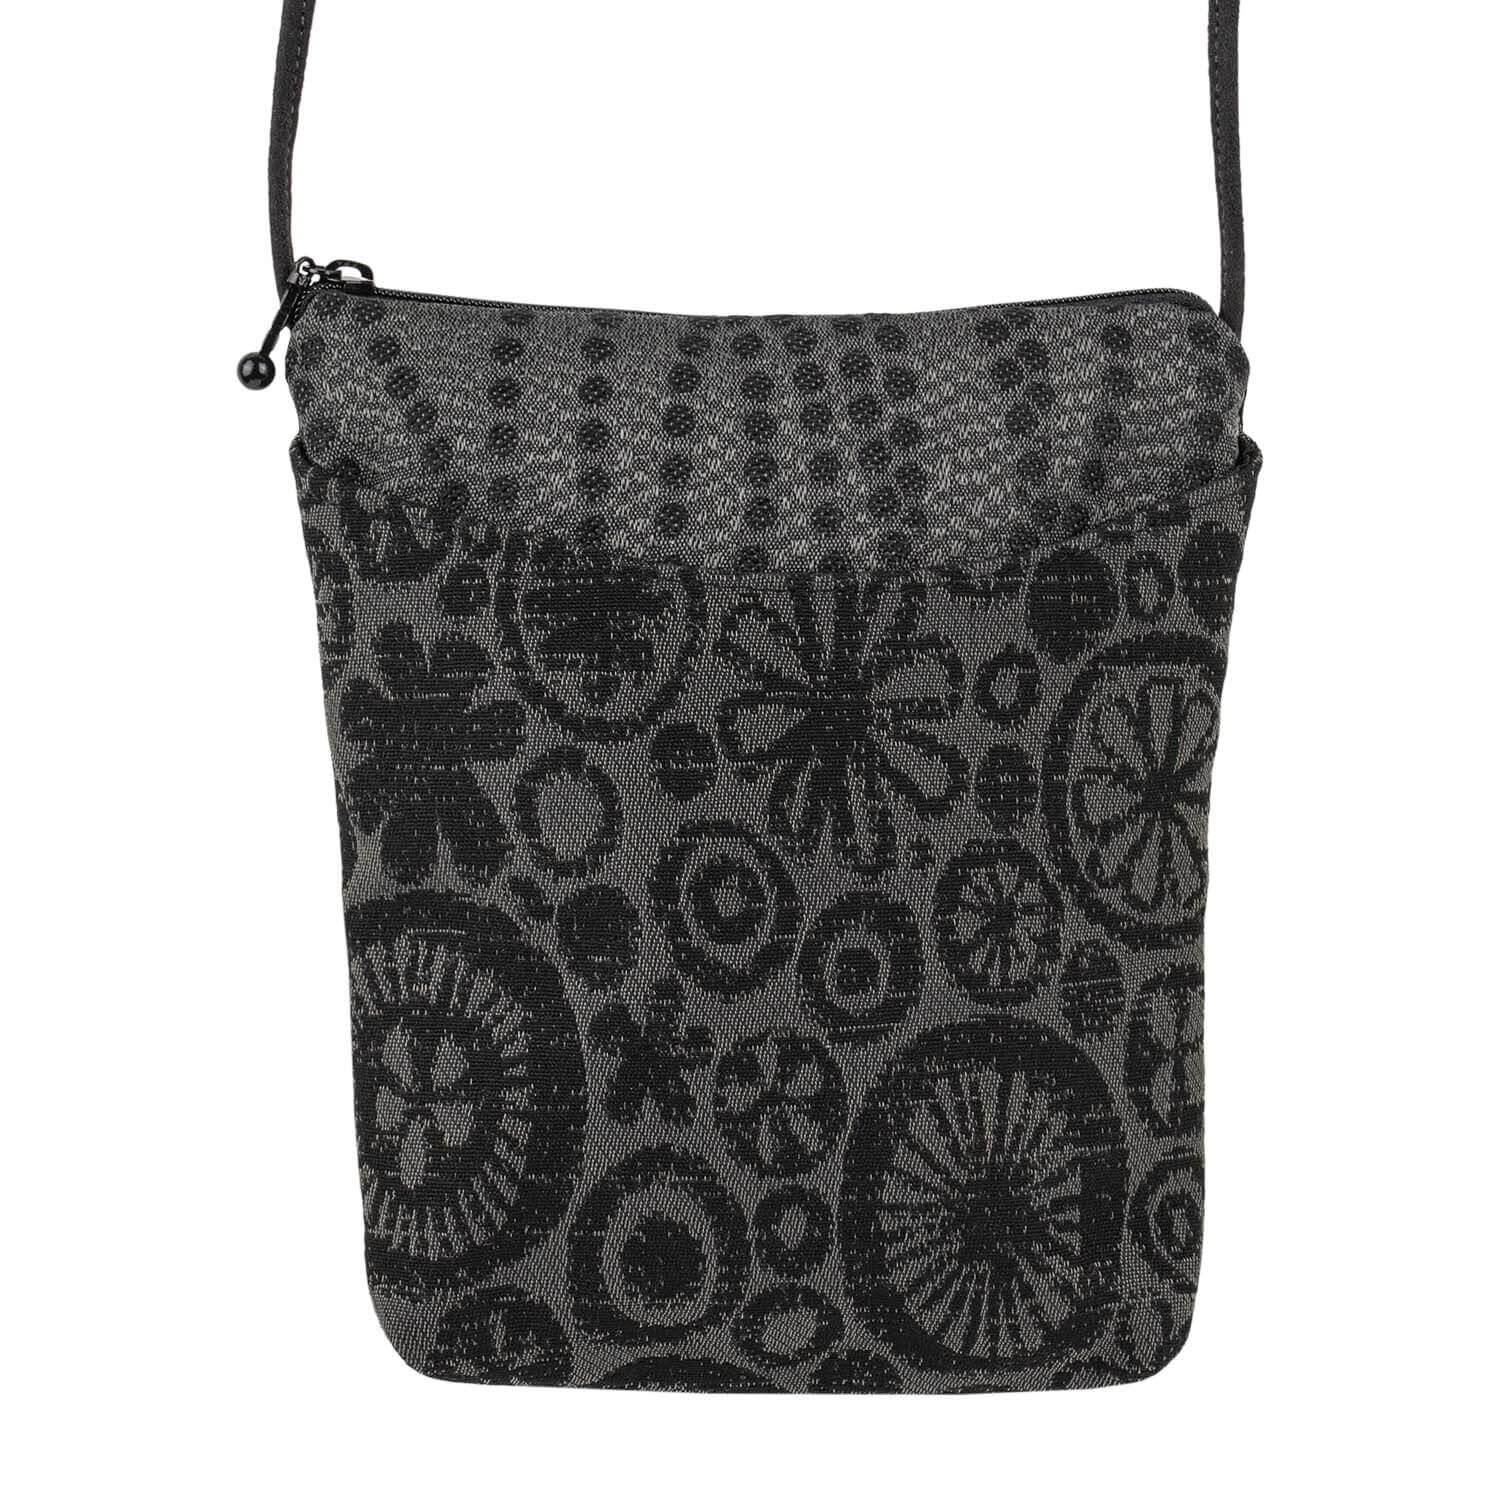 Busy Bee 6 pocket Tote